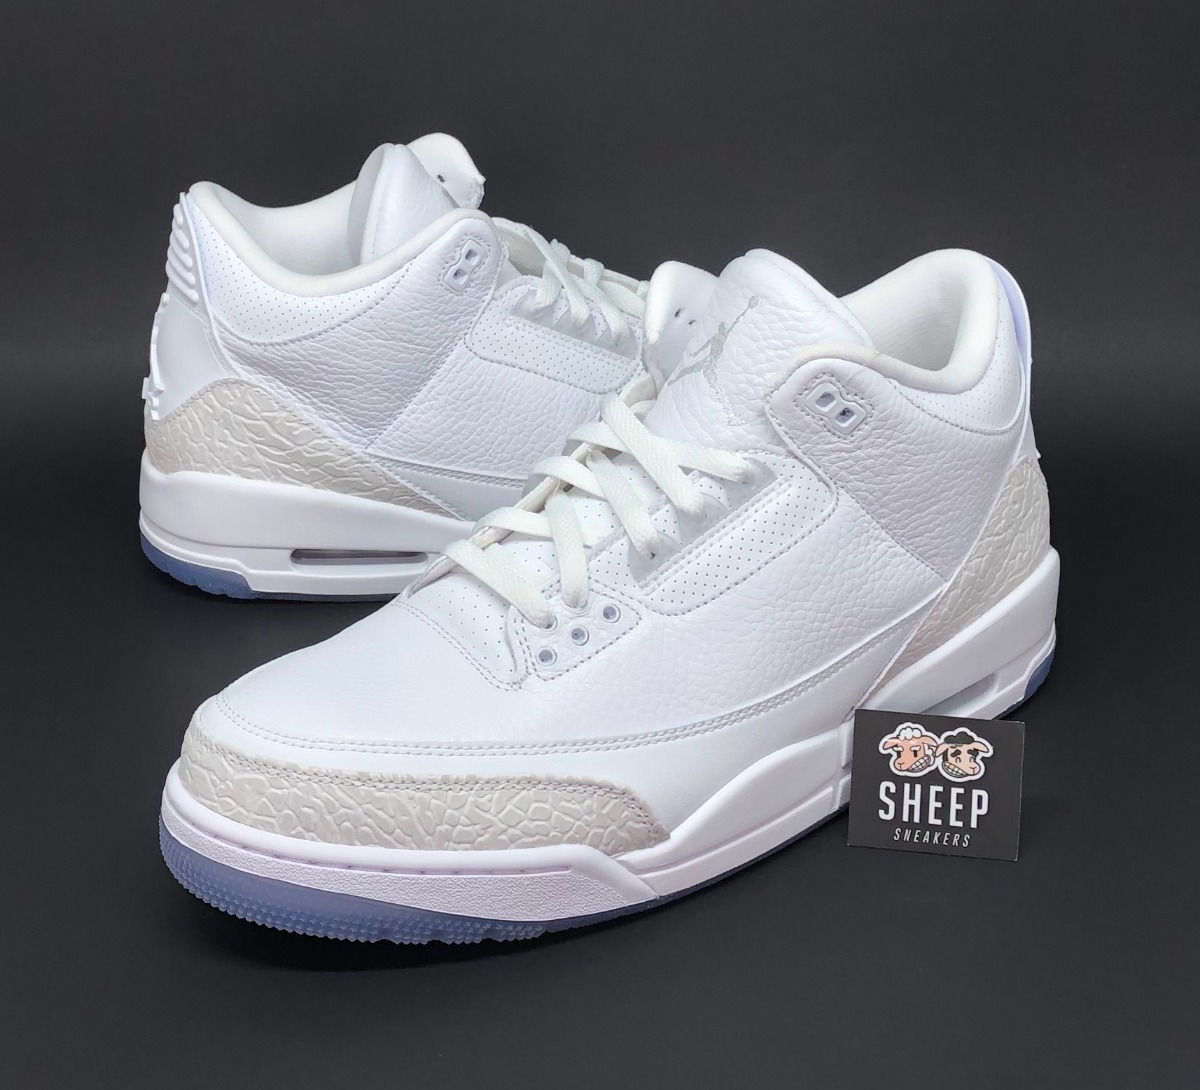 official photos a2b05 cc778 Tênis Nike Air Jordan 3 Retro Pure White